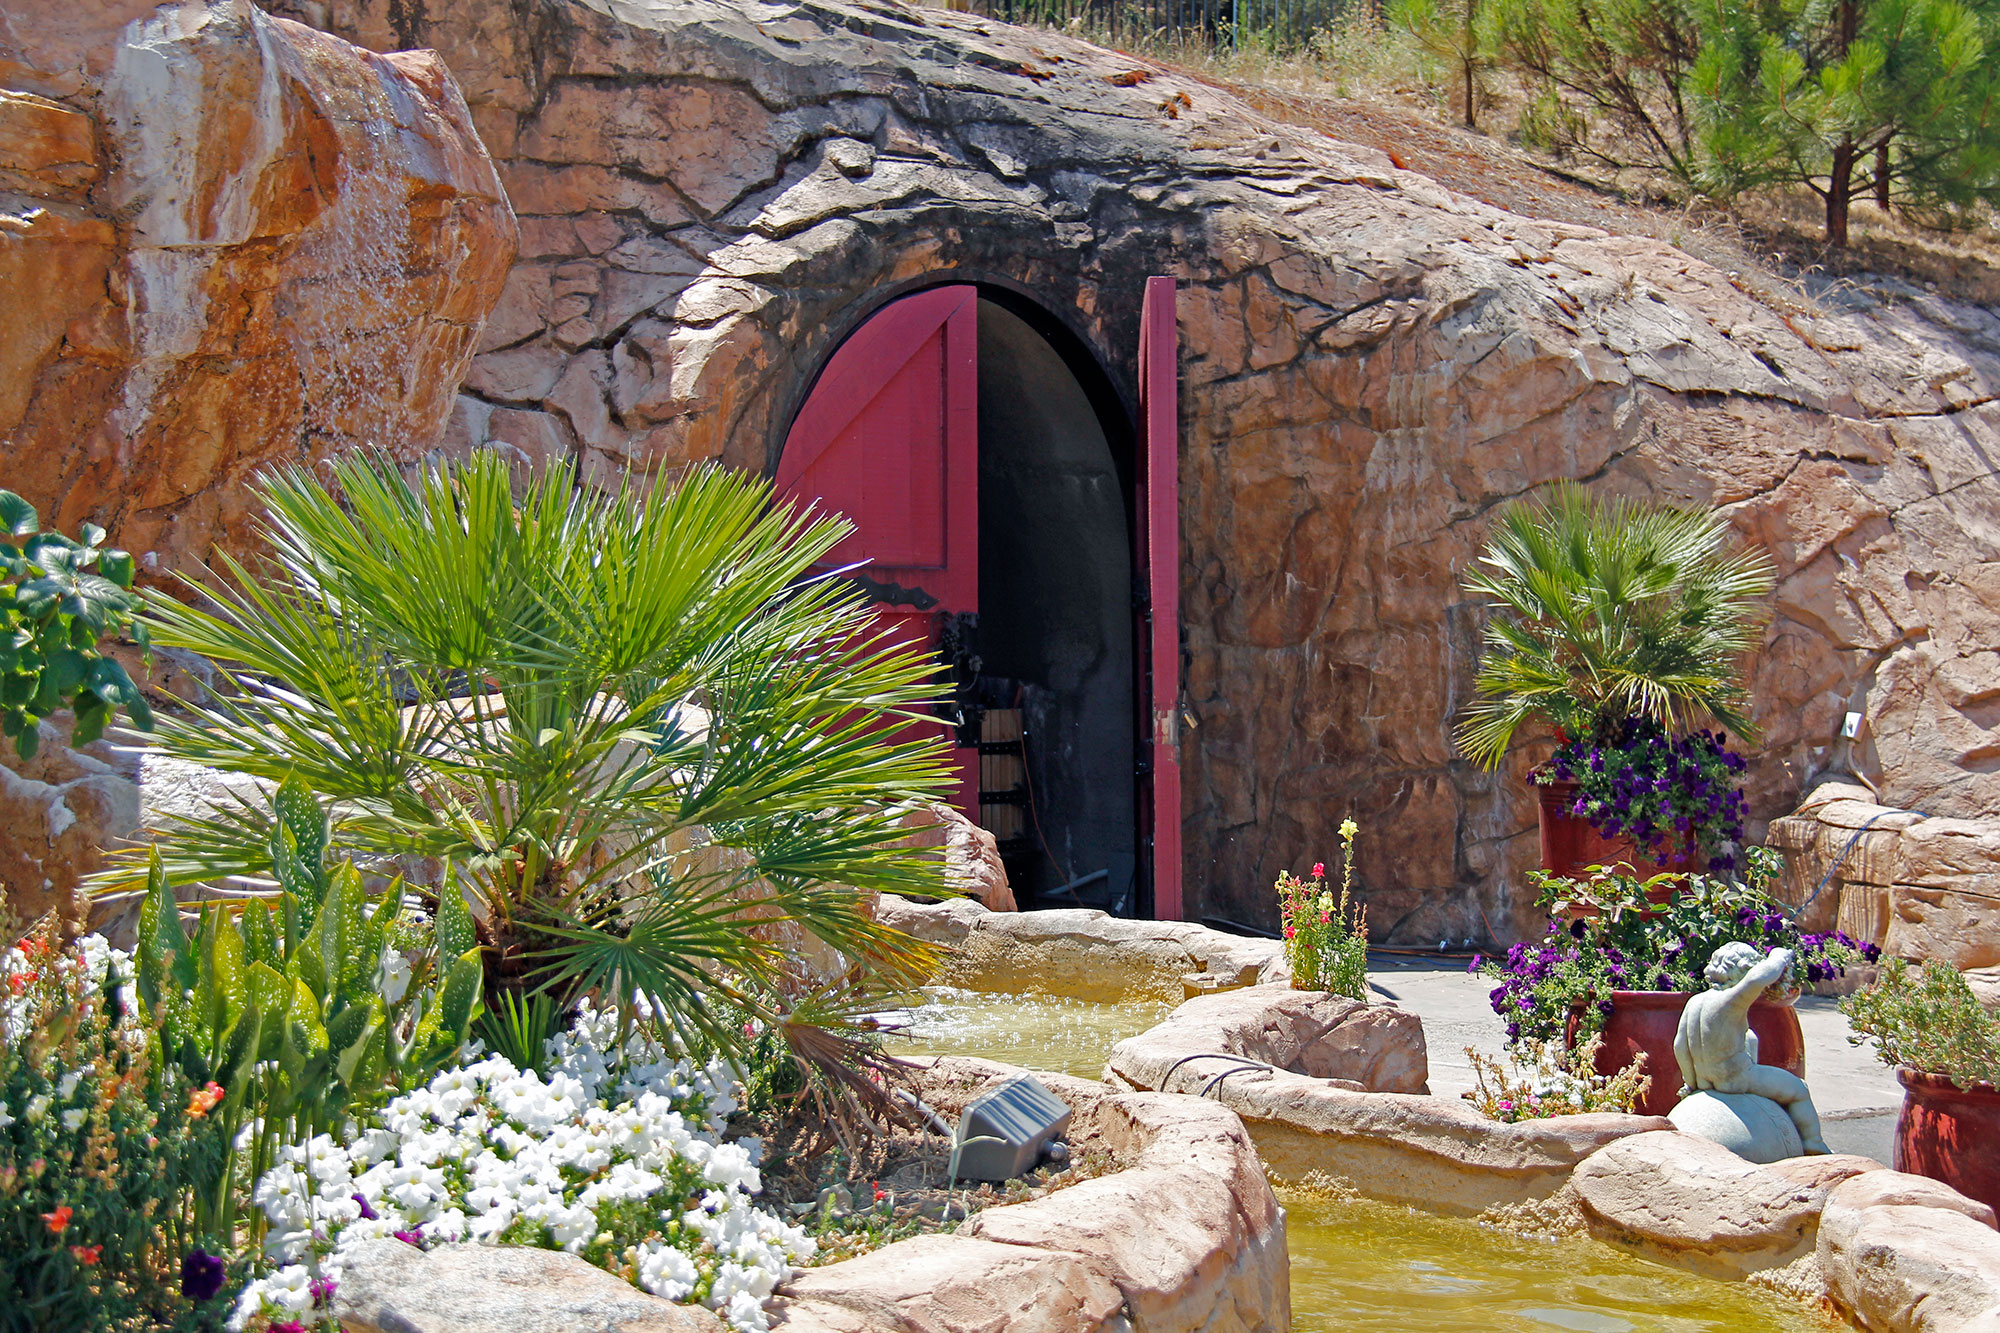 Waterfall and entrance to the epic wine cave